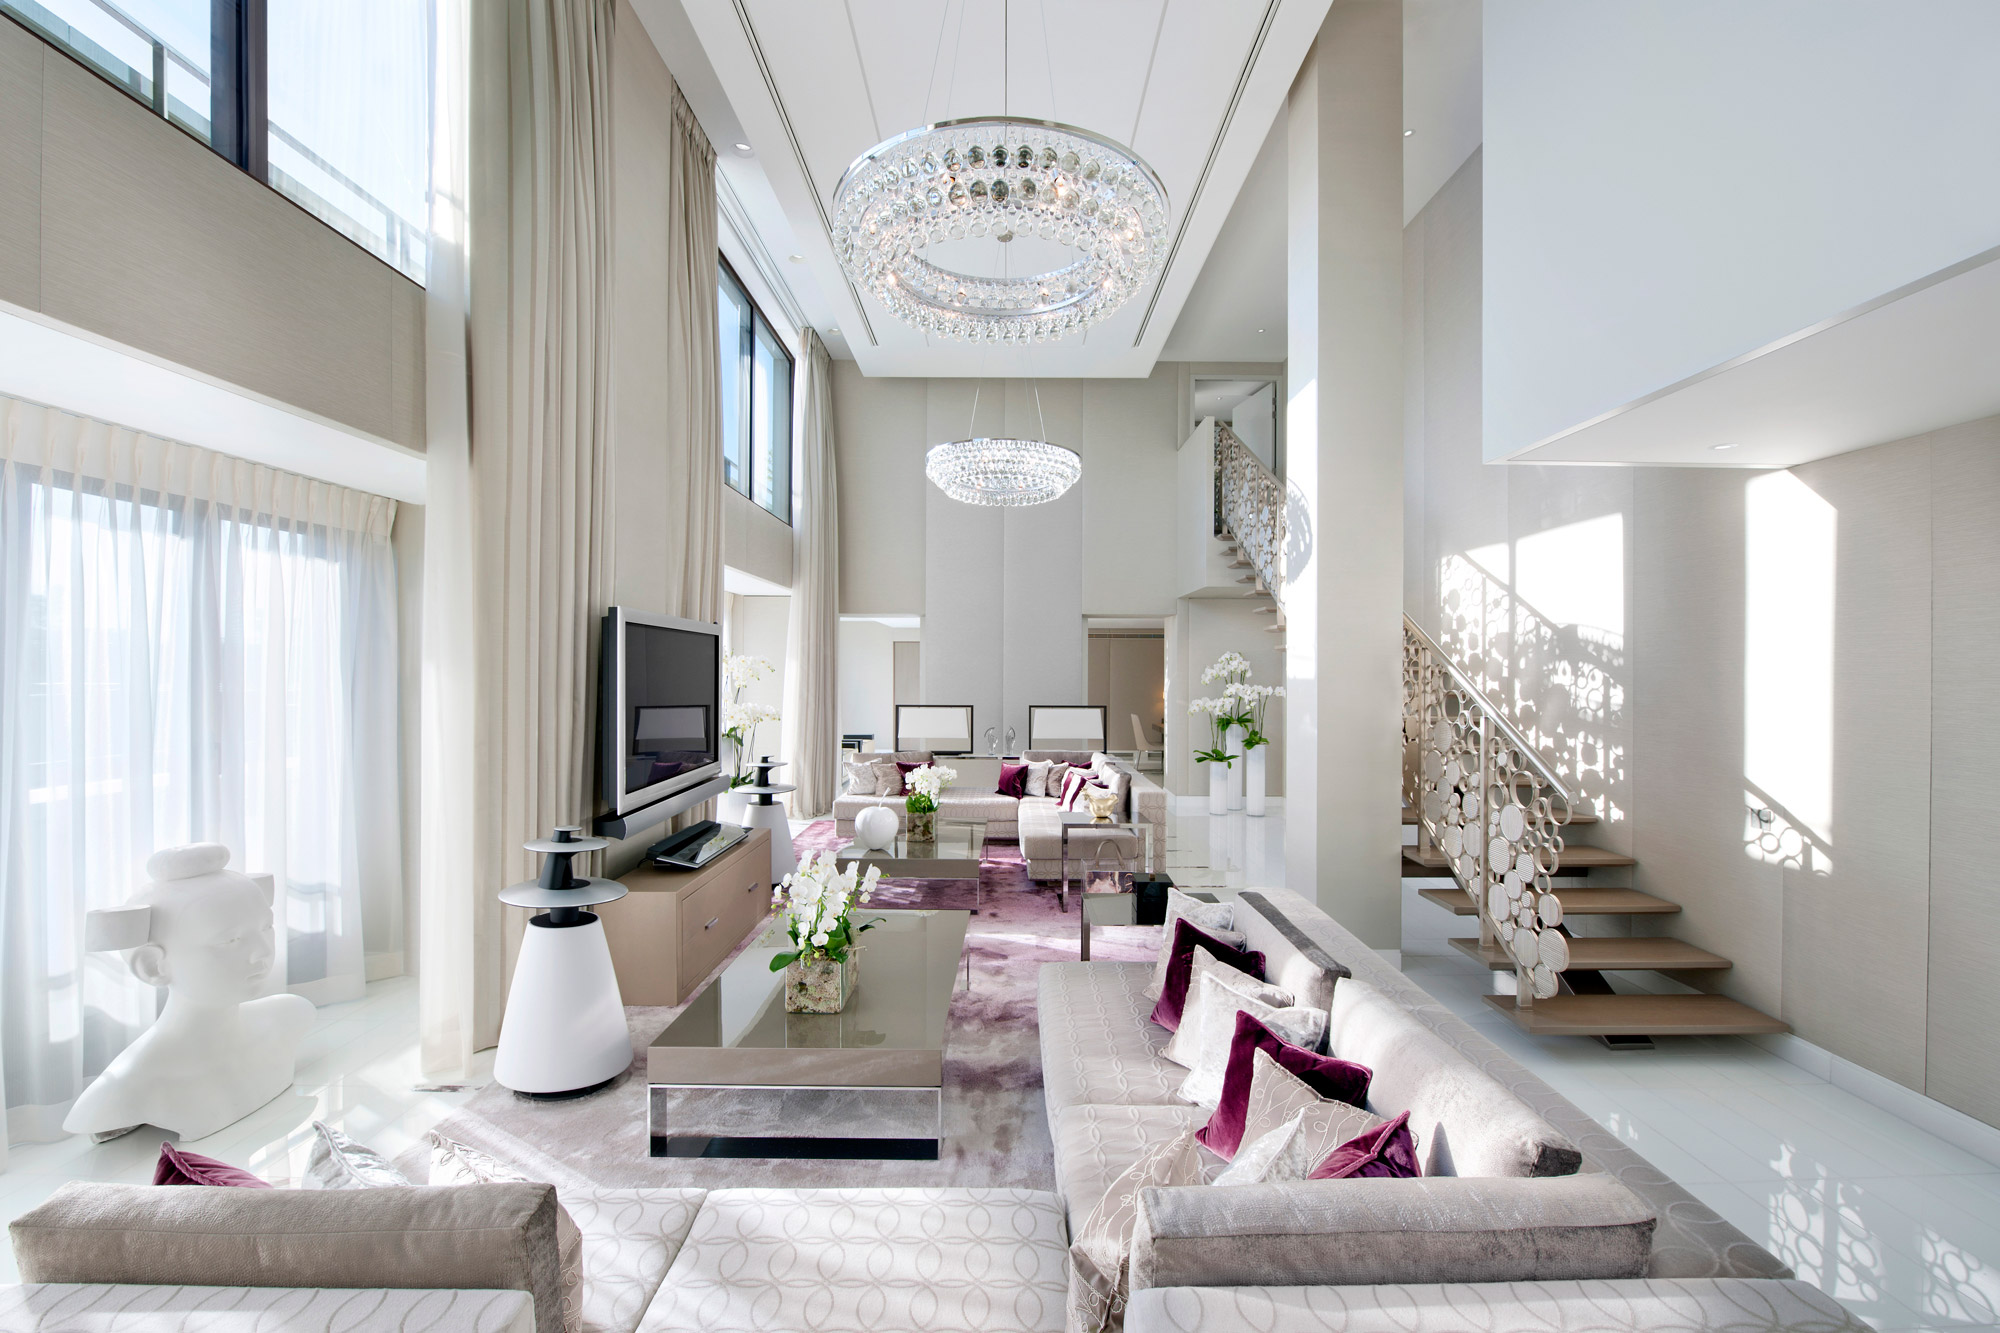 paris_royale_mandarin_living_room_suite_sm.jpg